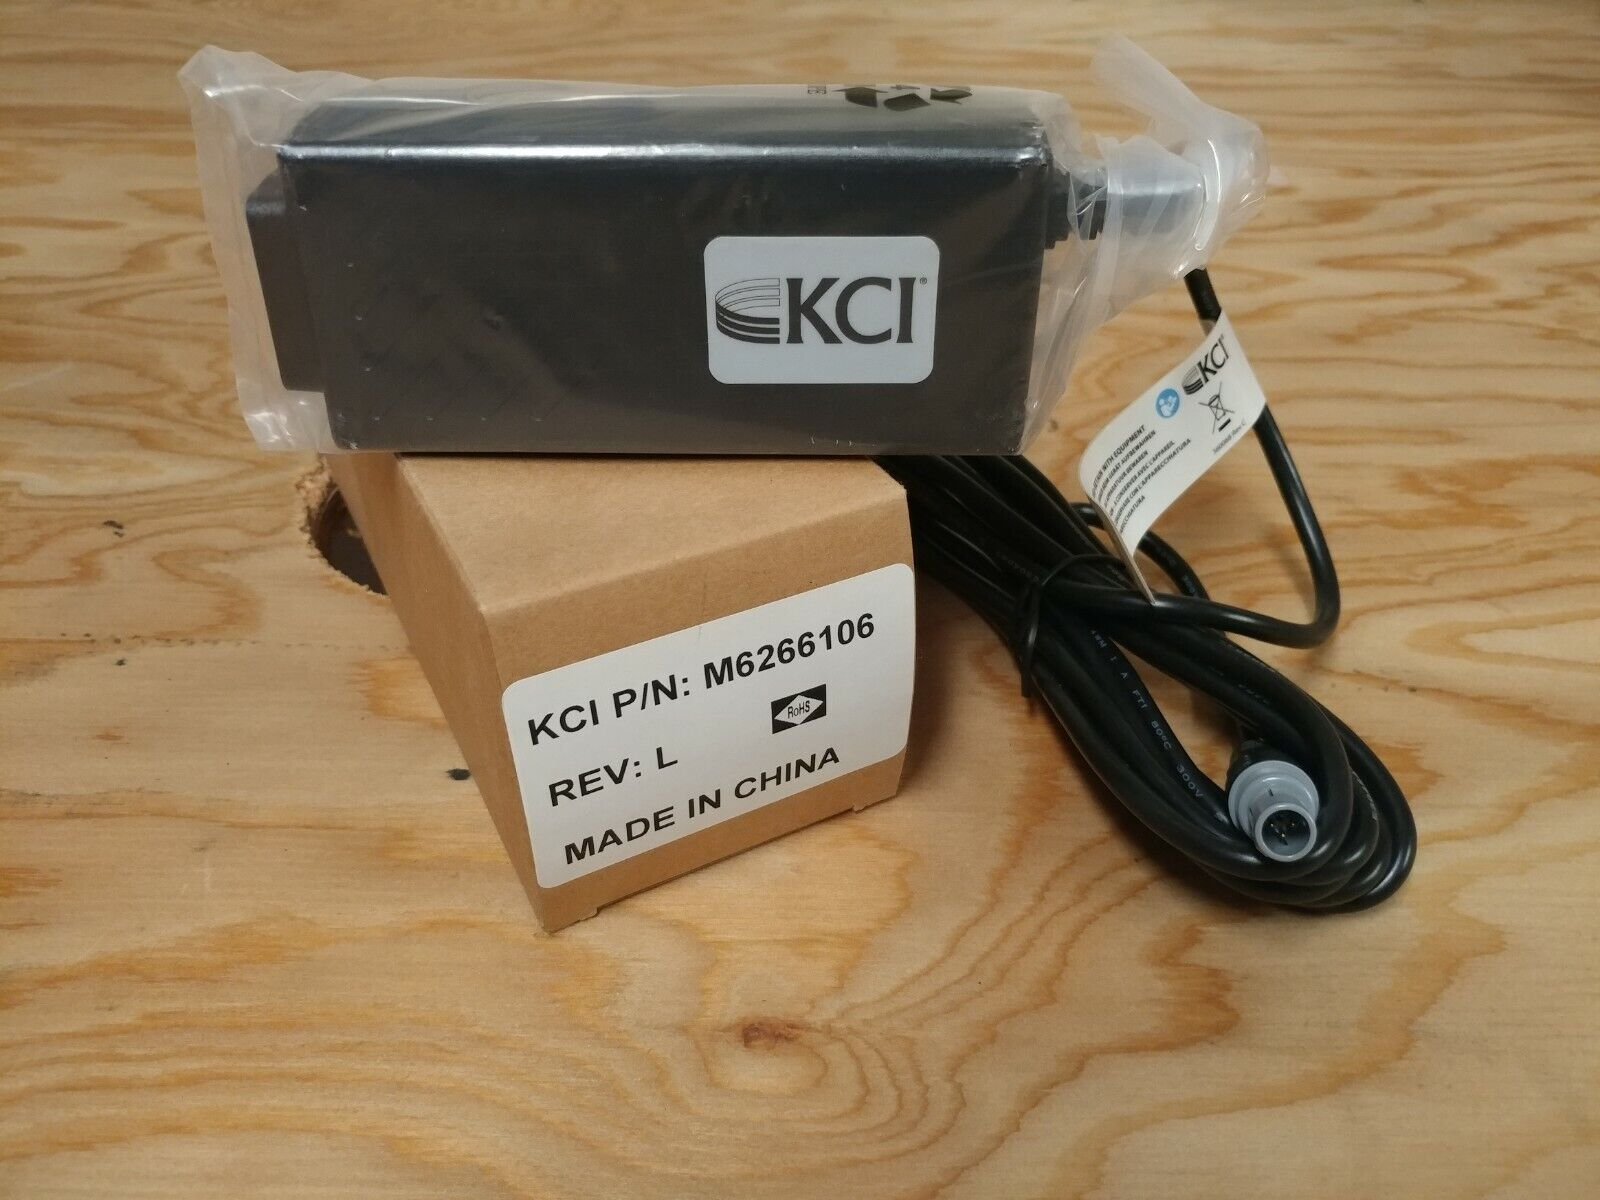 12V 6A ICCNEXERGY MWA065012A KCI M6266106 Power Supply - $10.00